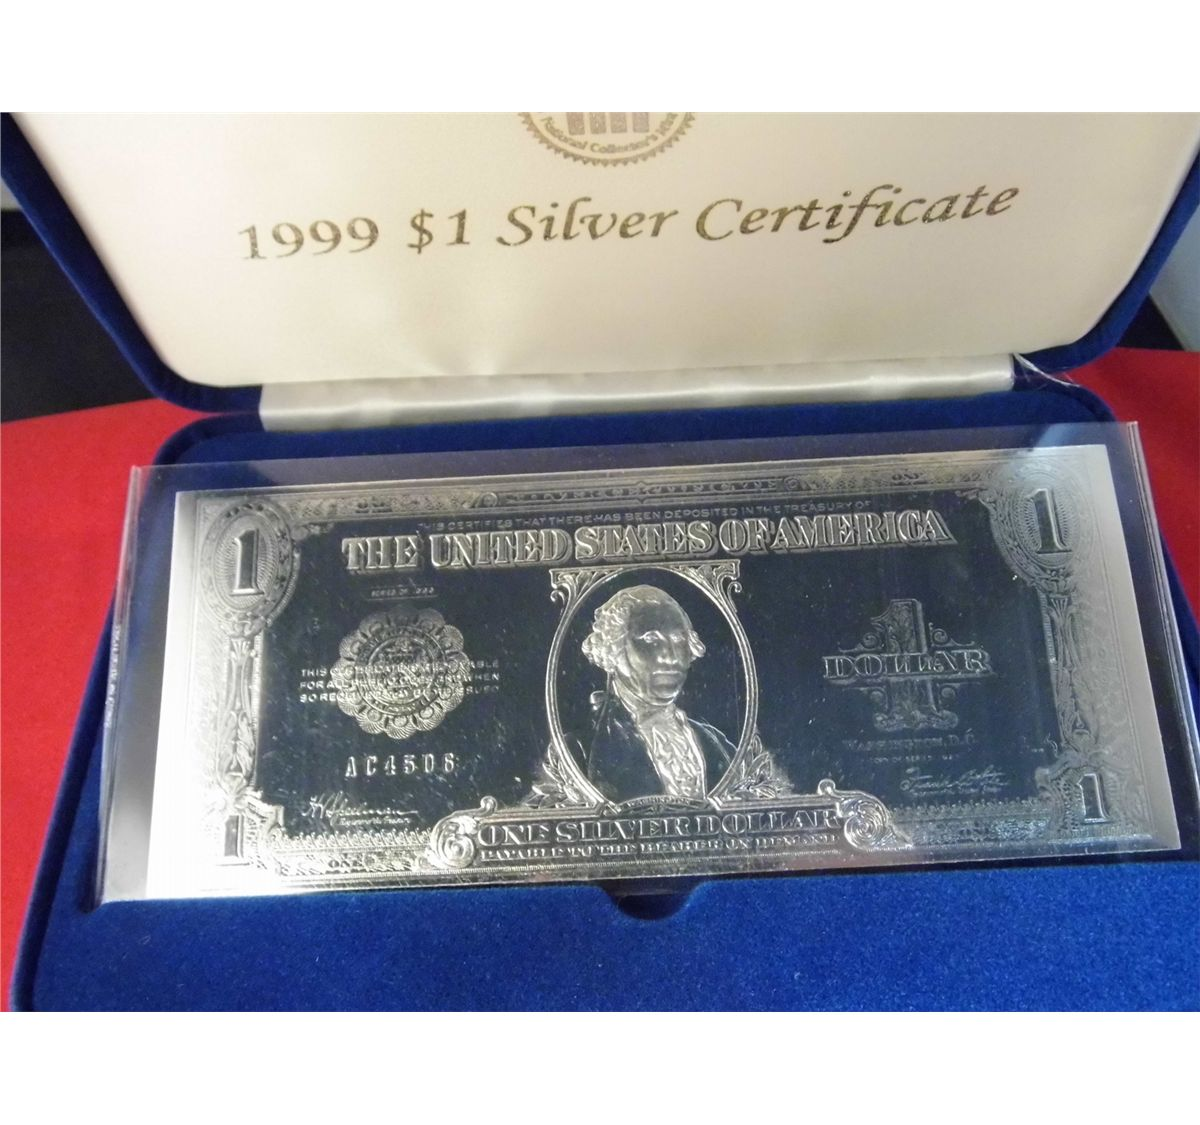 National collectors mint 1999 1 silver certificate note image 2 national collectors mint 1999 1 silver certificate note perimeter 21 xflitez Gallery